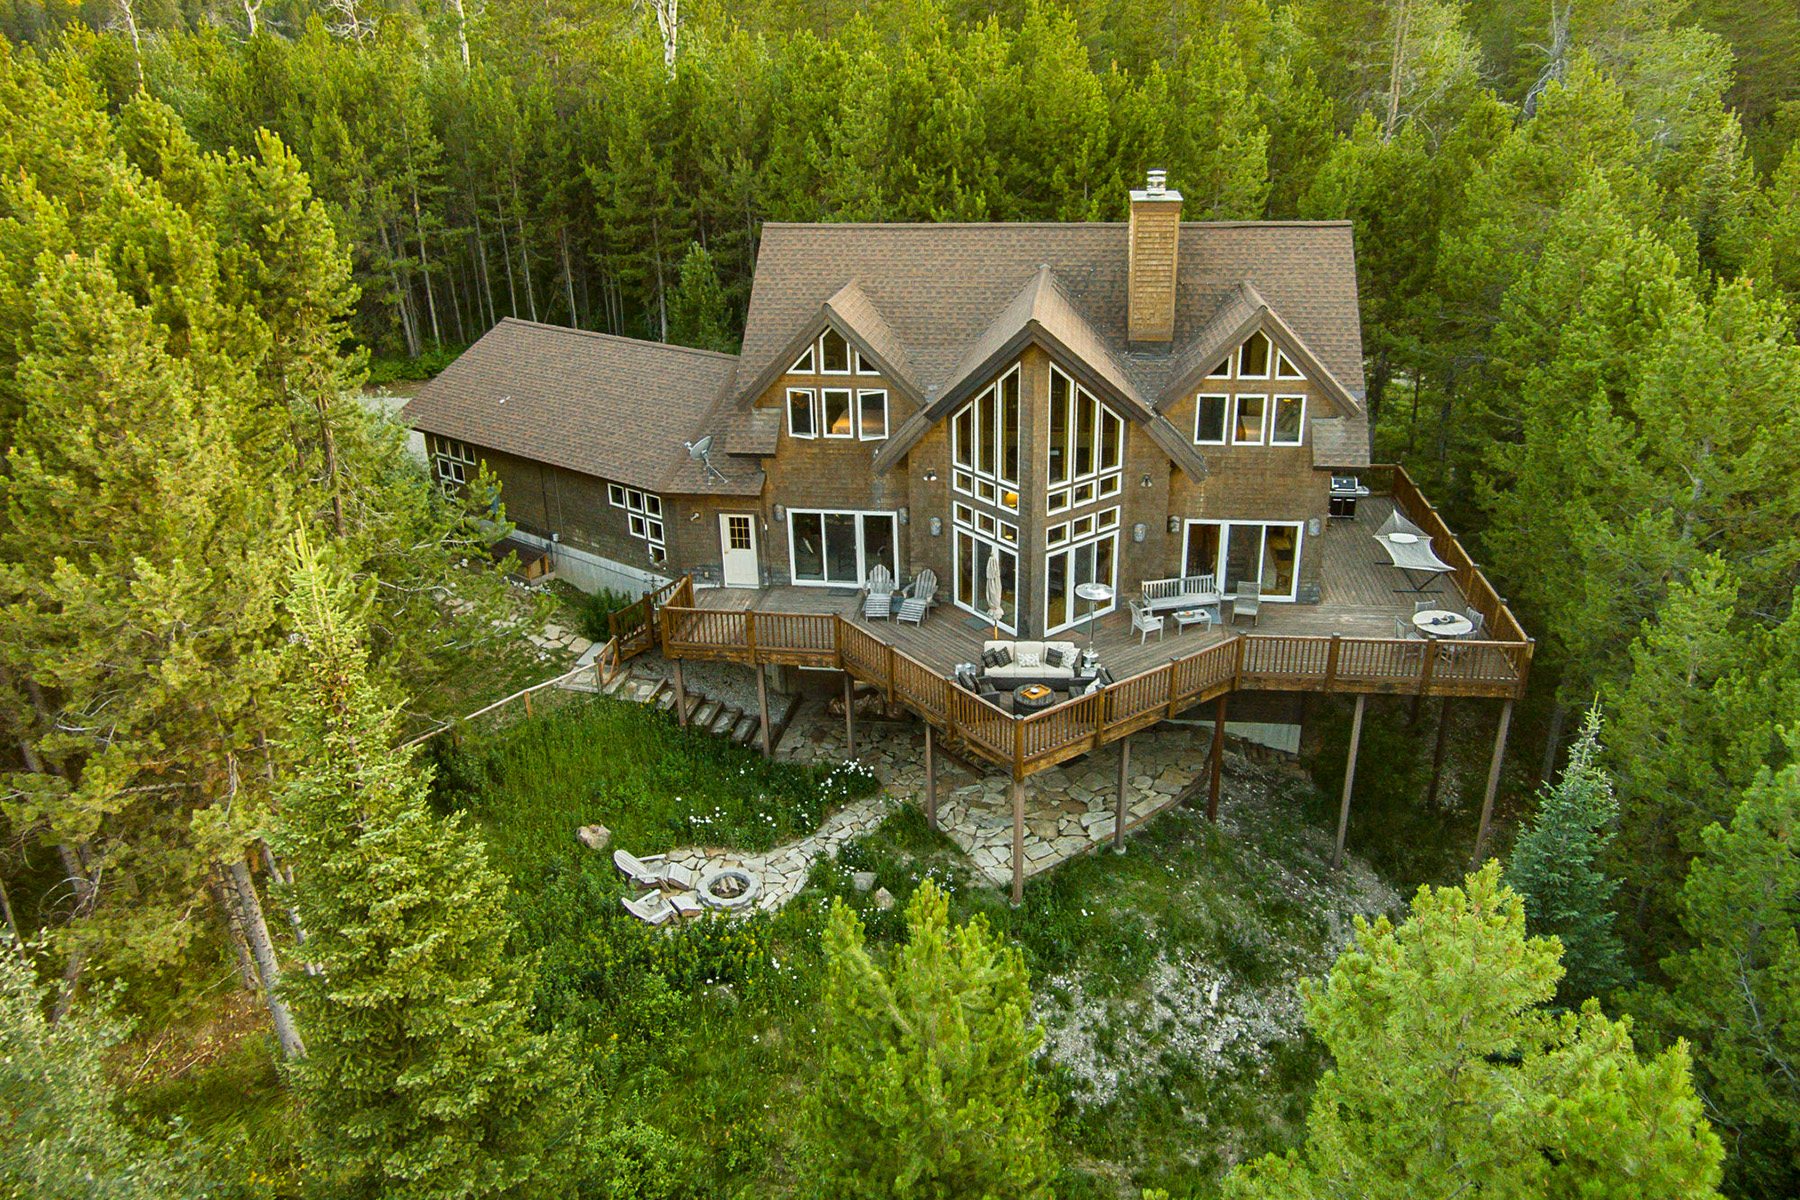 Maison unifamiliale pour l Vente à Teton Views through the Trees 6460 Bouquet Springs Victor, Idaho, 83455 Jackson Hole, États-Unis